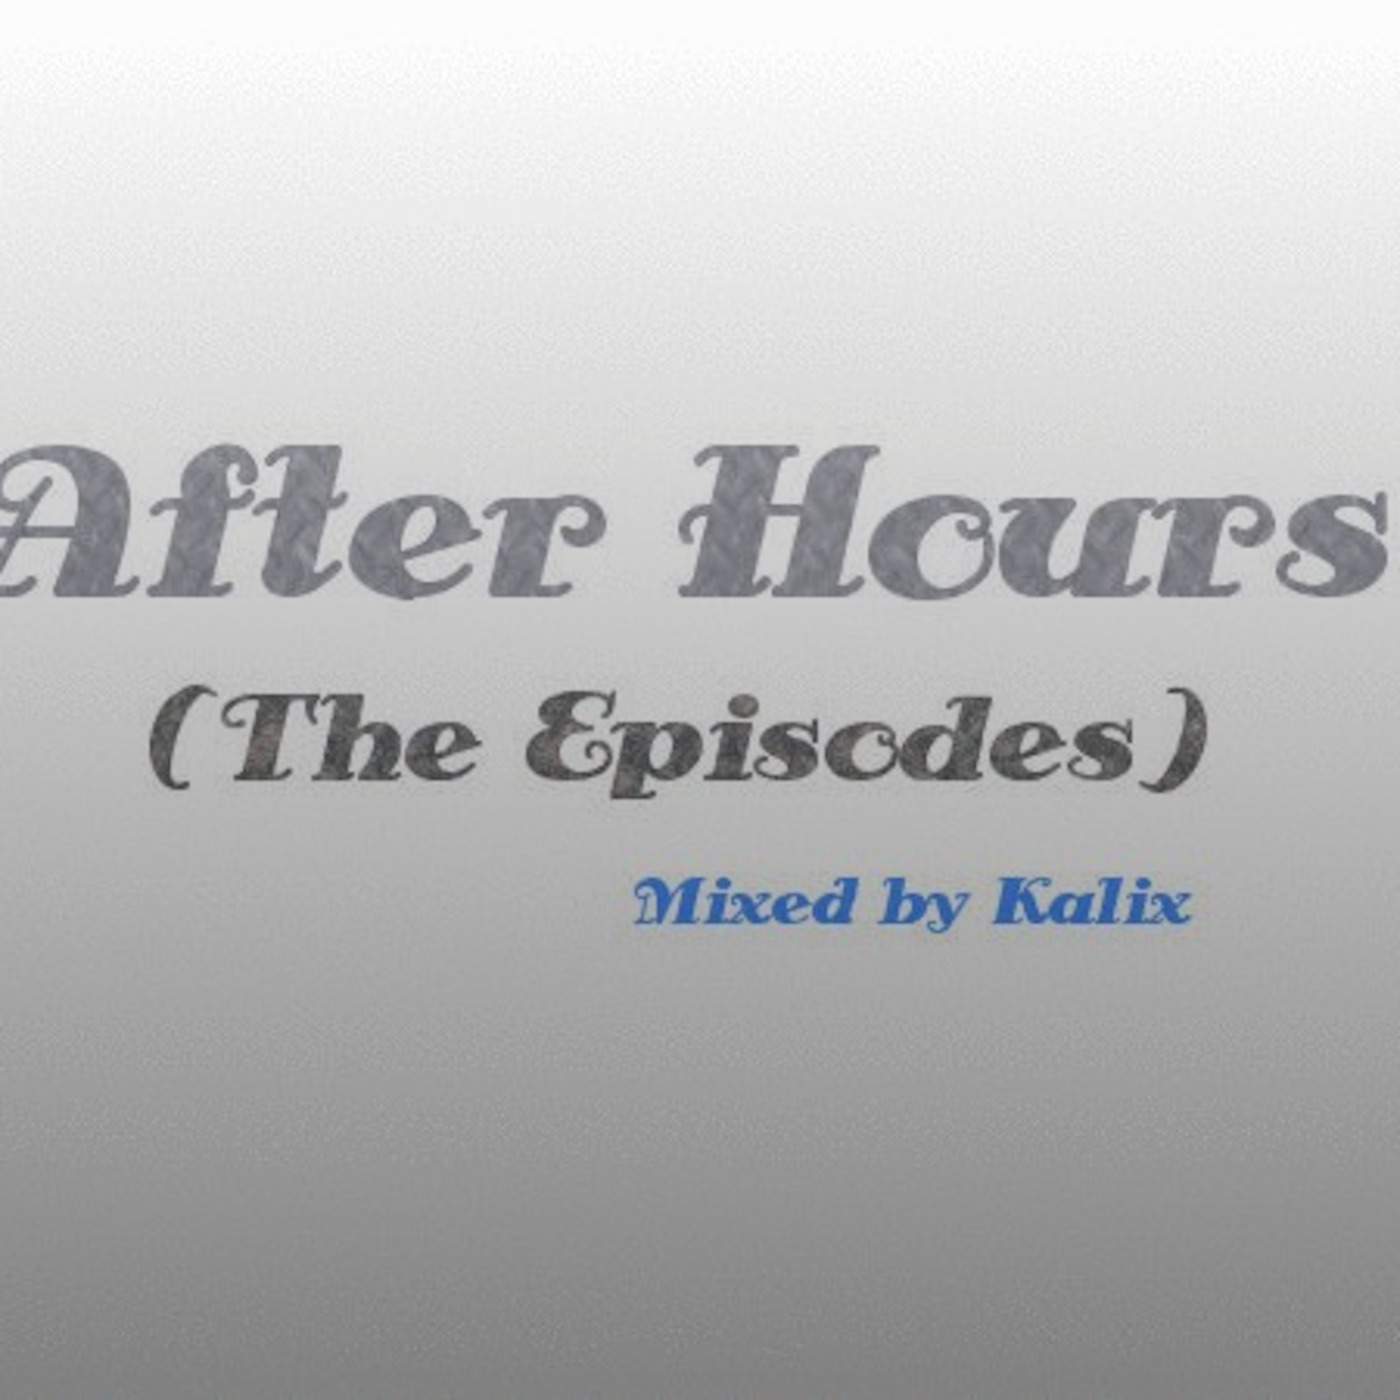 After Hours (The Podcast Episodes)